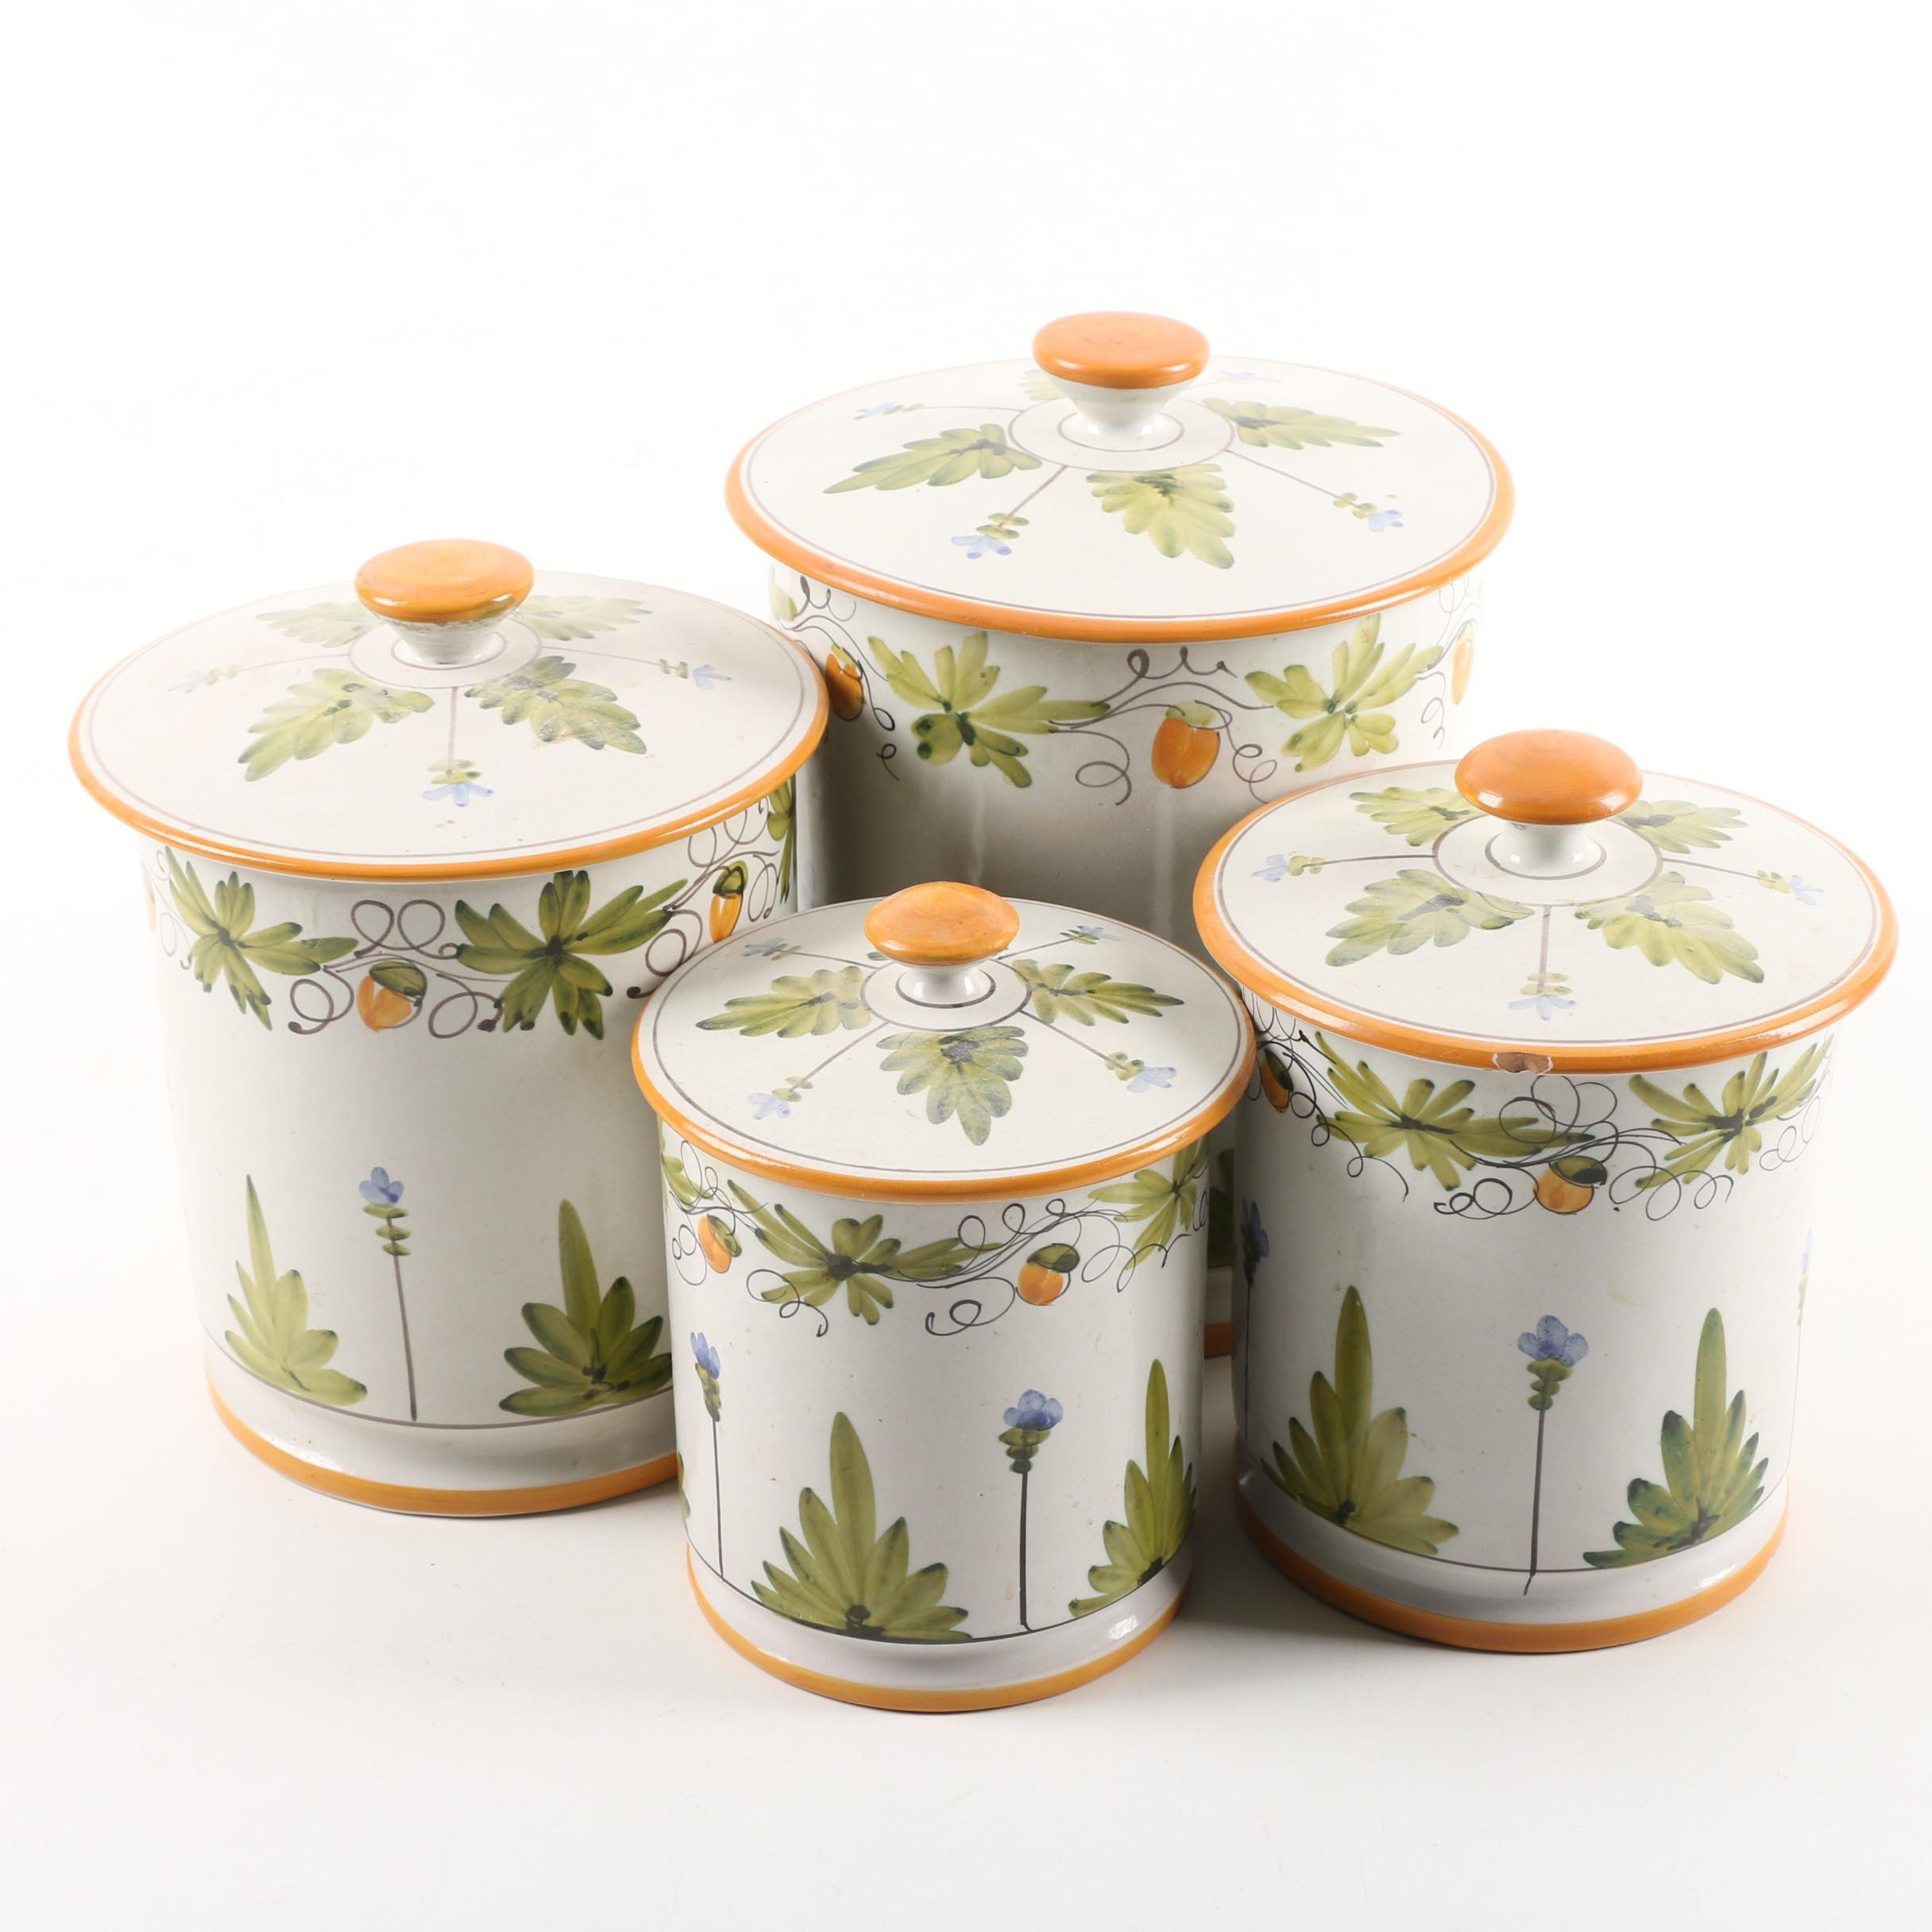 Vintage Hand-Painted Italian Faience Kitchen Canisters